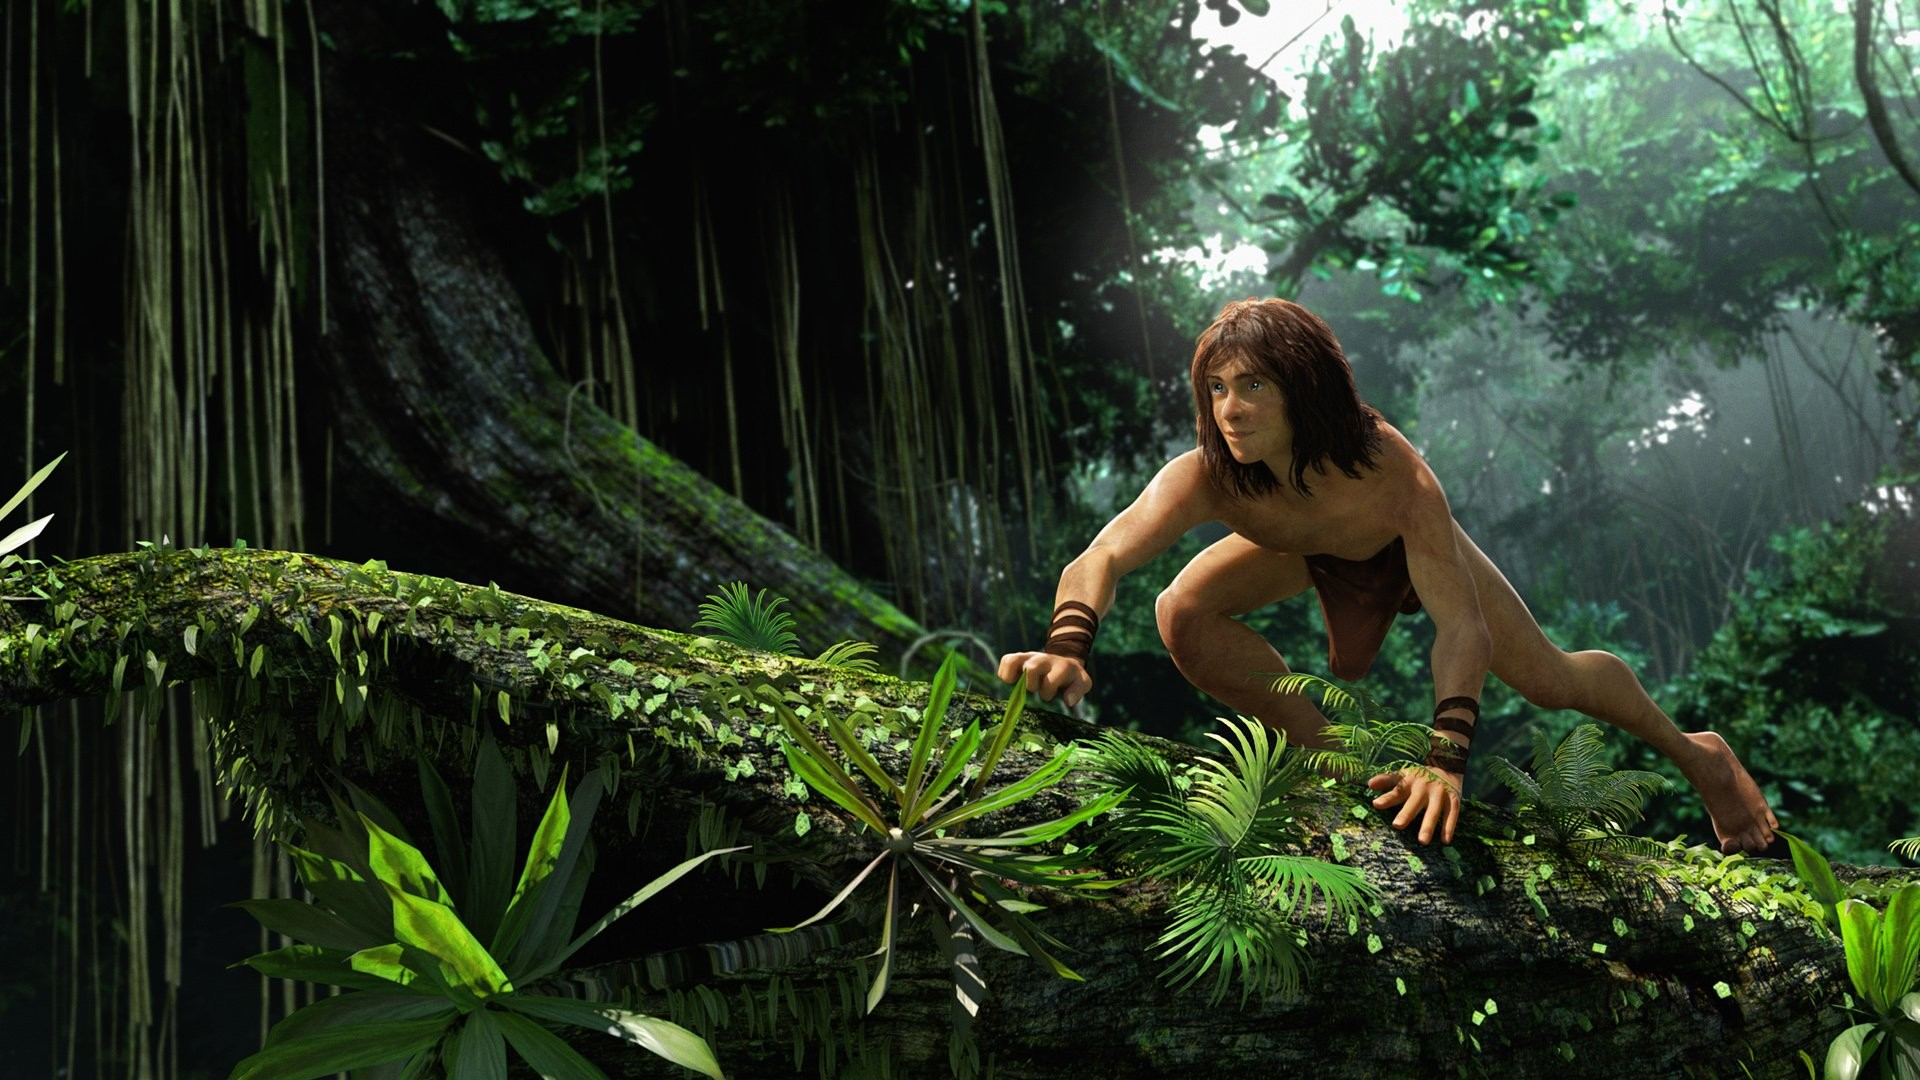 Tarzan wallpapers 59 images - Tarzan wallpaper ...